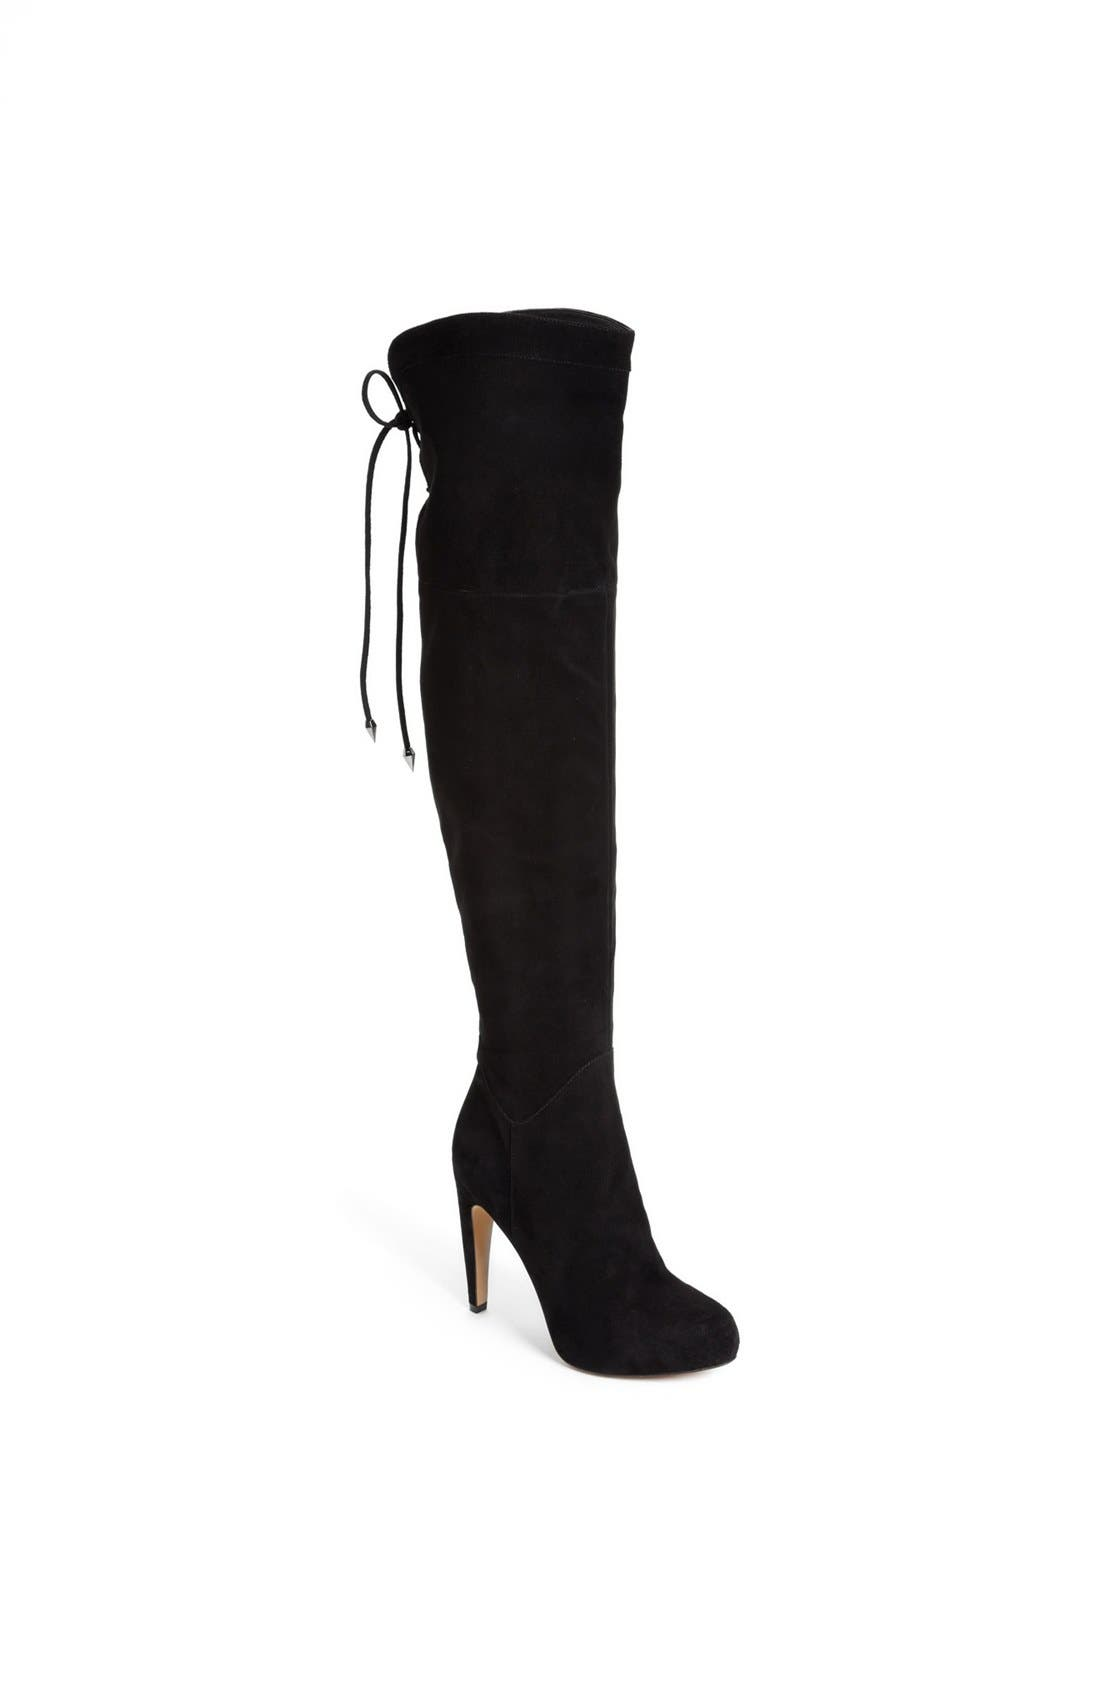 'Kayla' Over the Knee Boot,                         Main,                         color, Black Suede